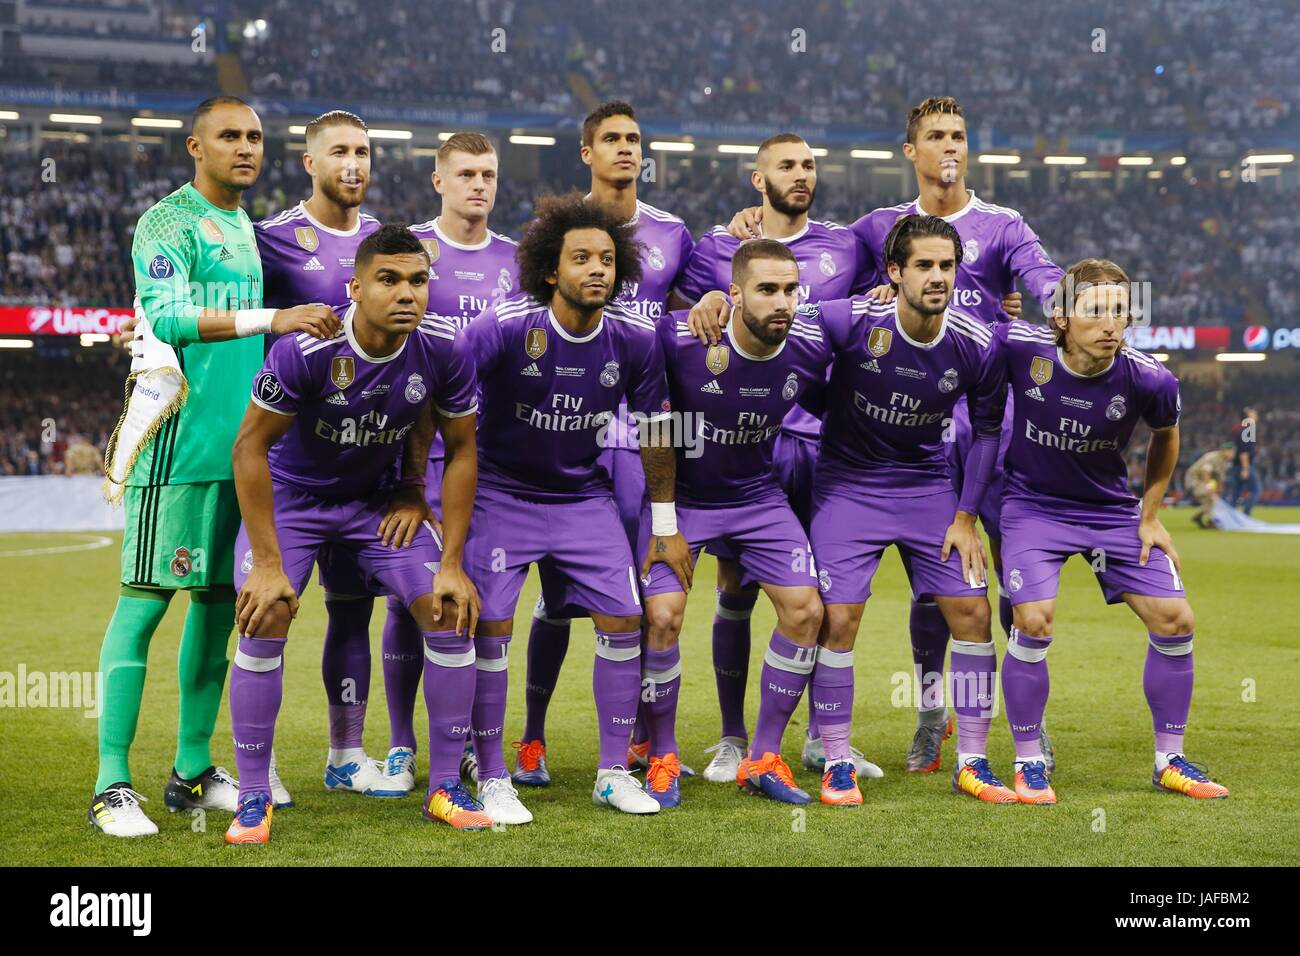 Cardiff Wales 3rd June 2017 Real Madrid Team Group Line Up